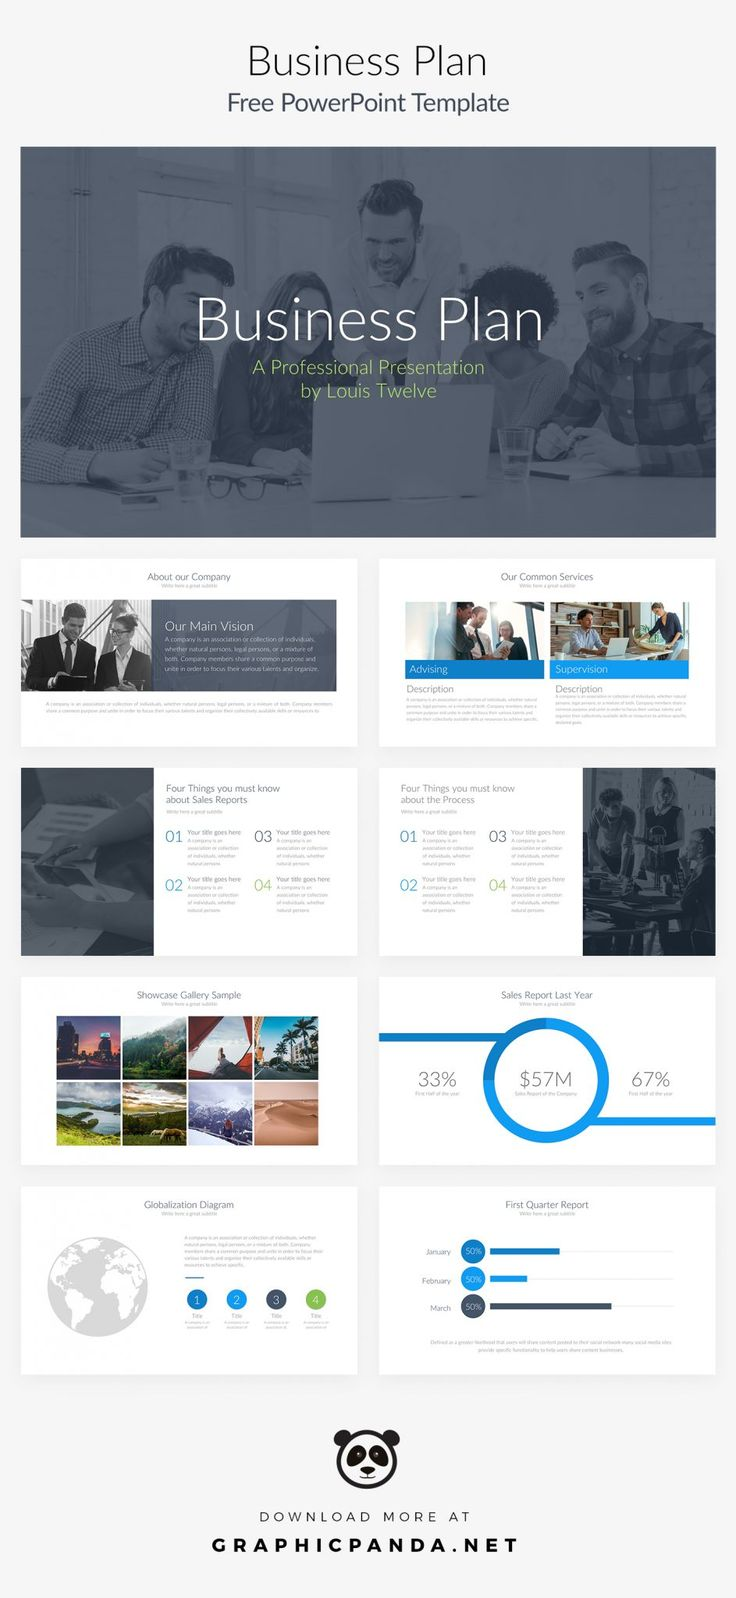 20 best free powerpoint templates images on pinterest | keynote, Presentation templates